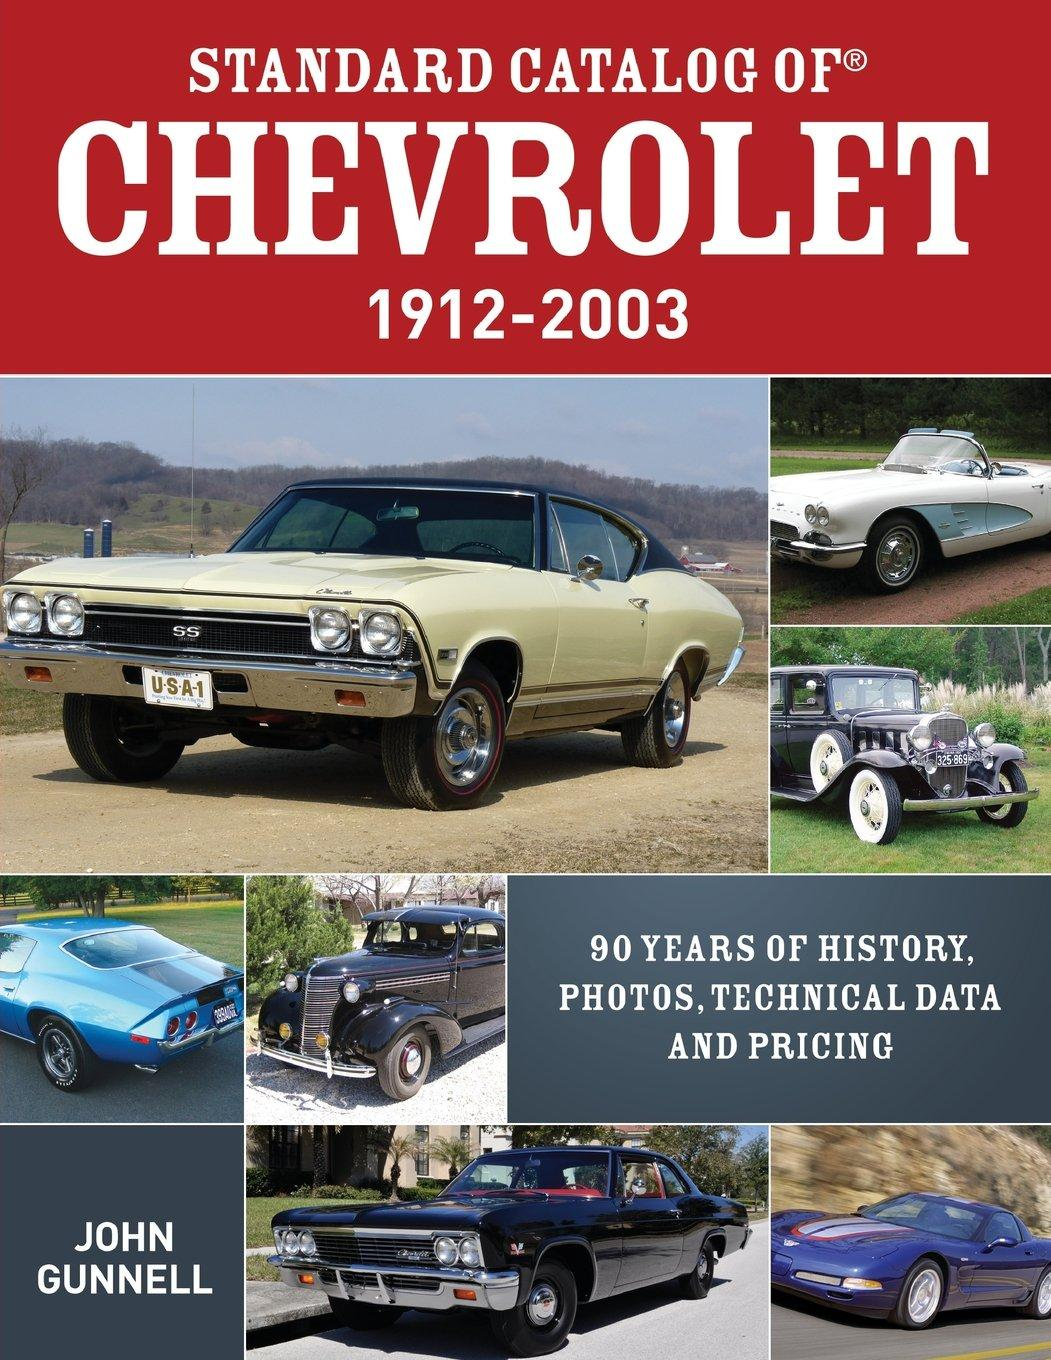 Standard Catalog of Chevrolet 1912-2003